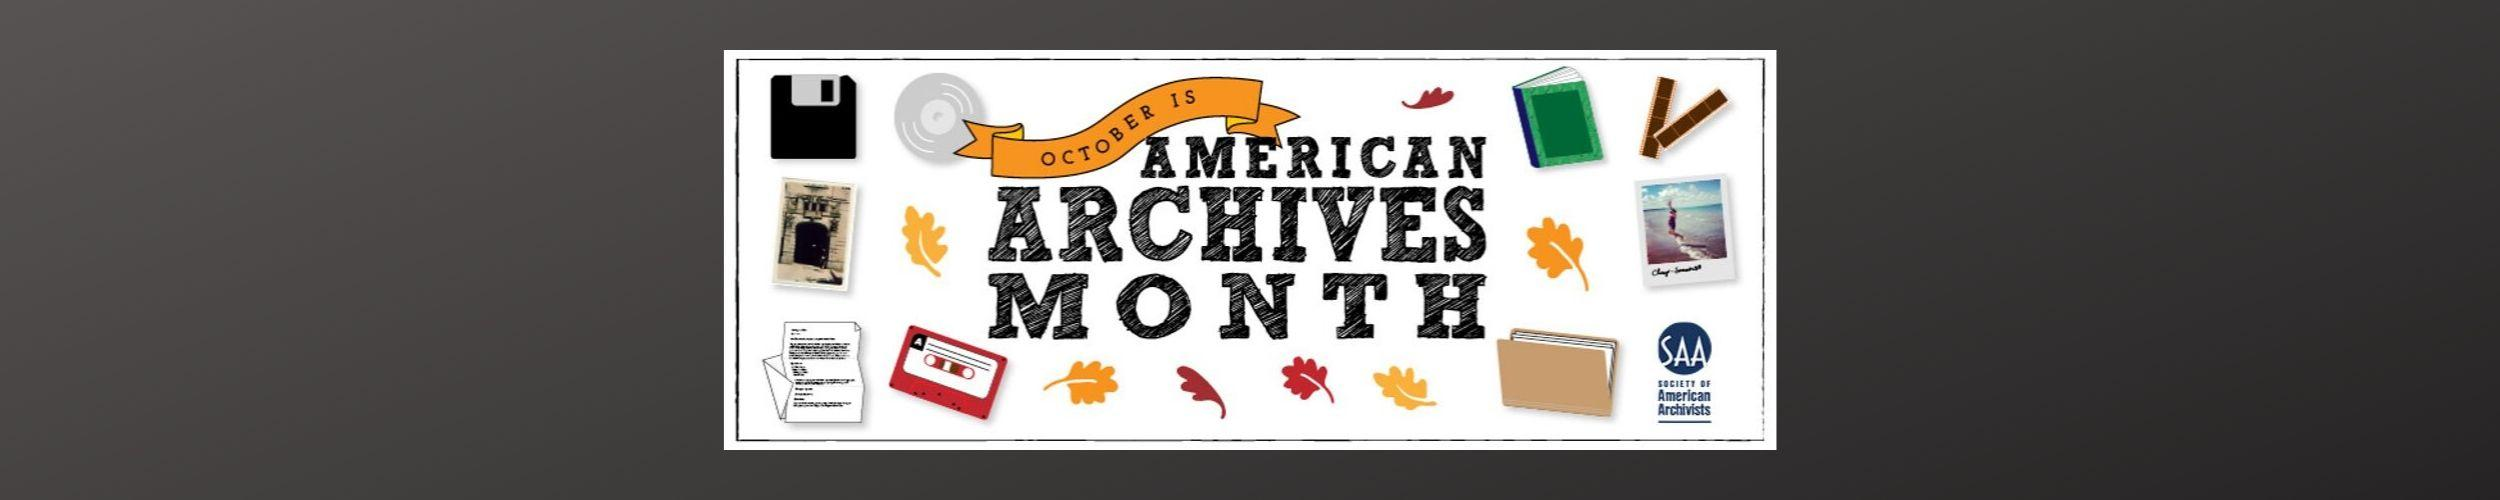 2019 american archives month